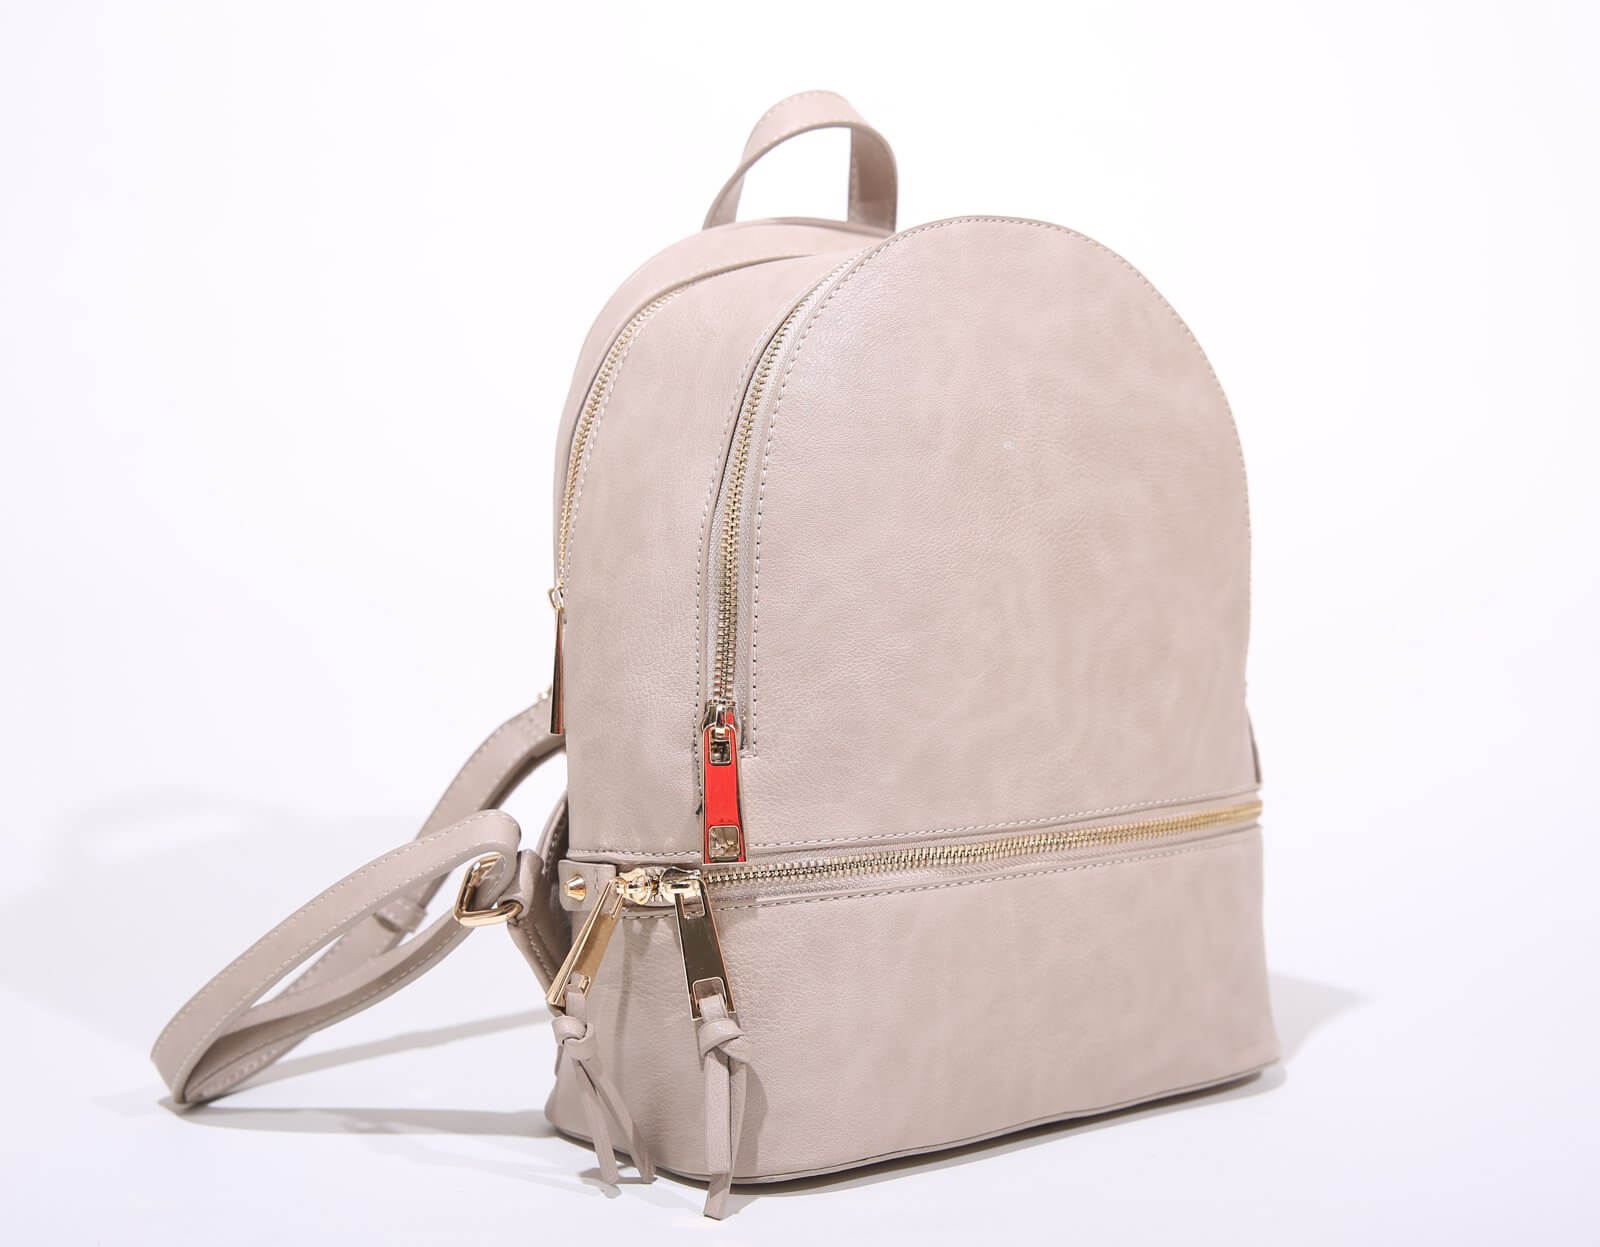 Beige pleather backpack